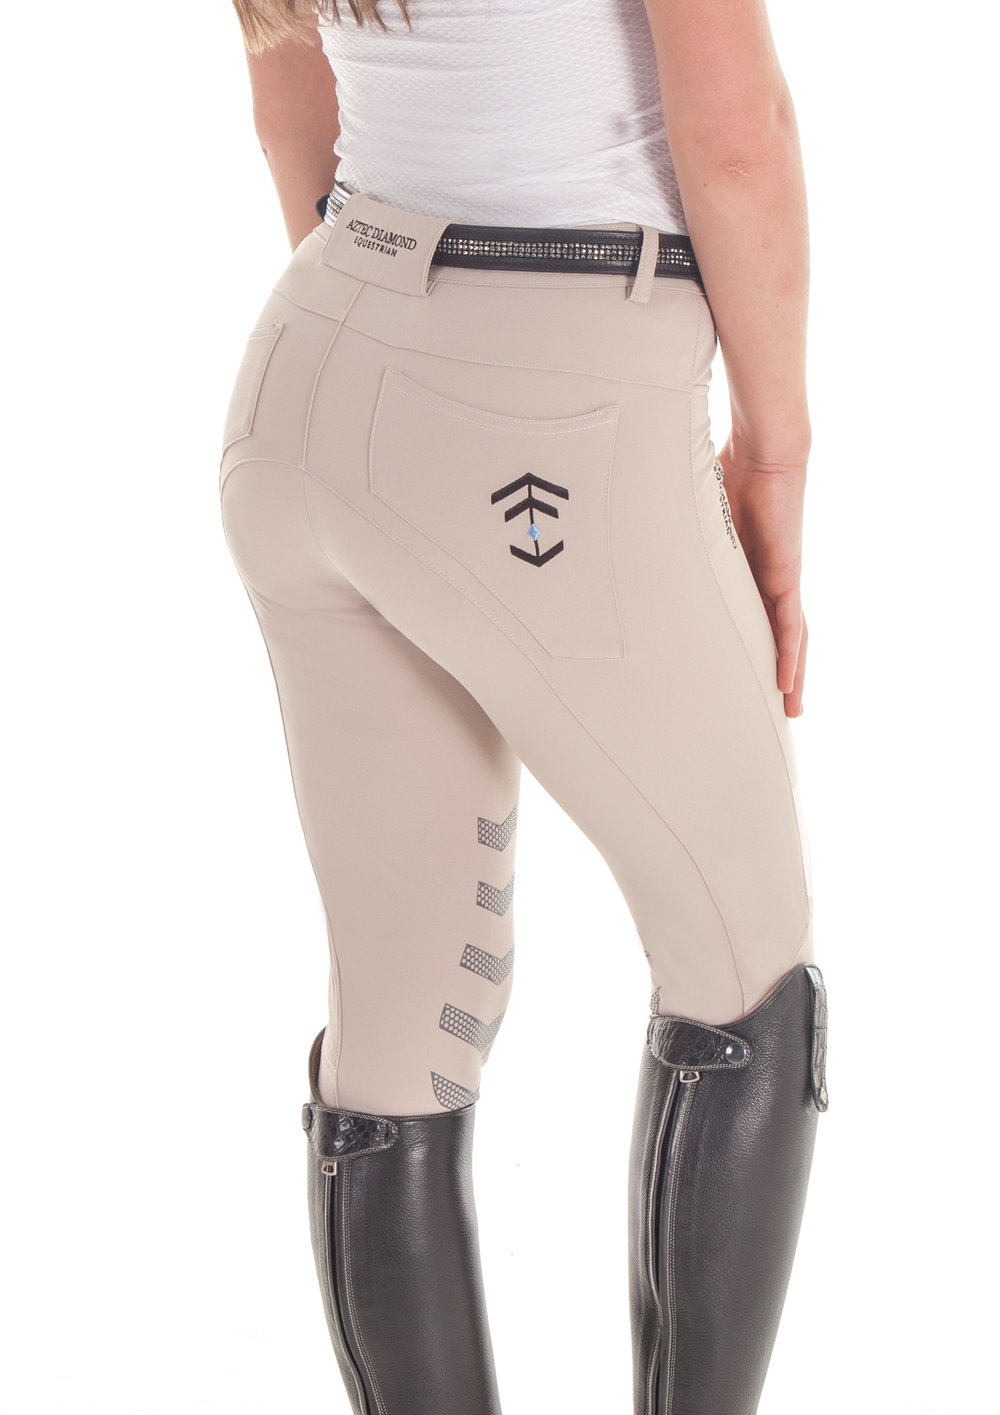 Aztec Diamond Everyday Technical breeches